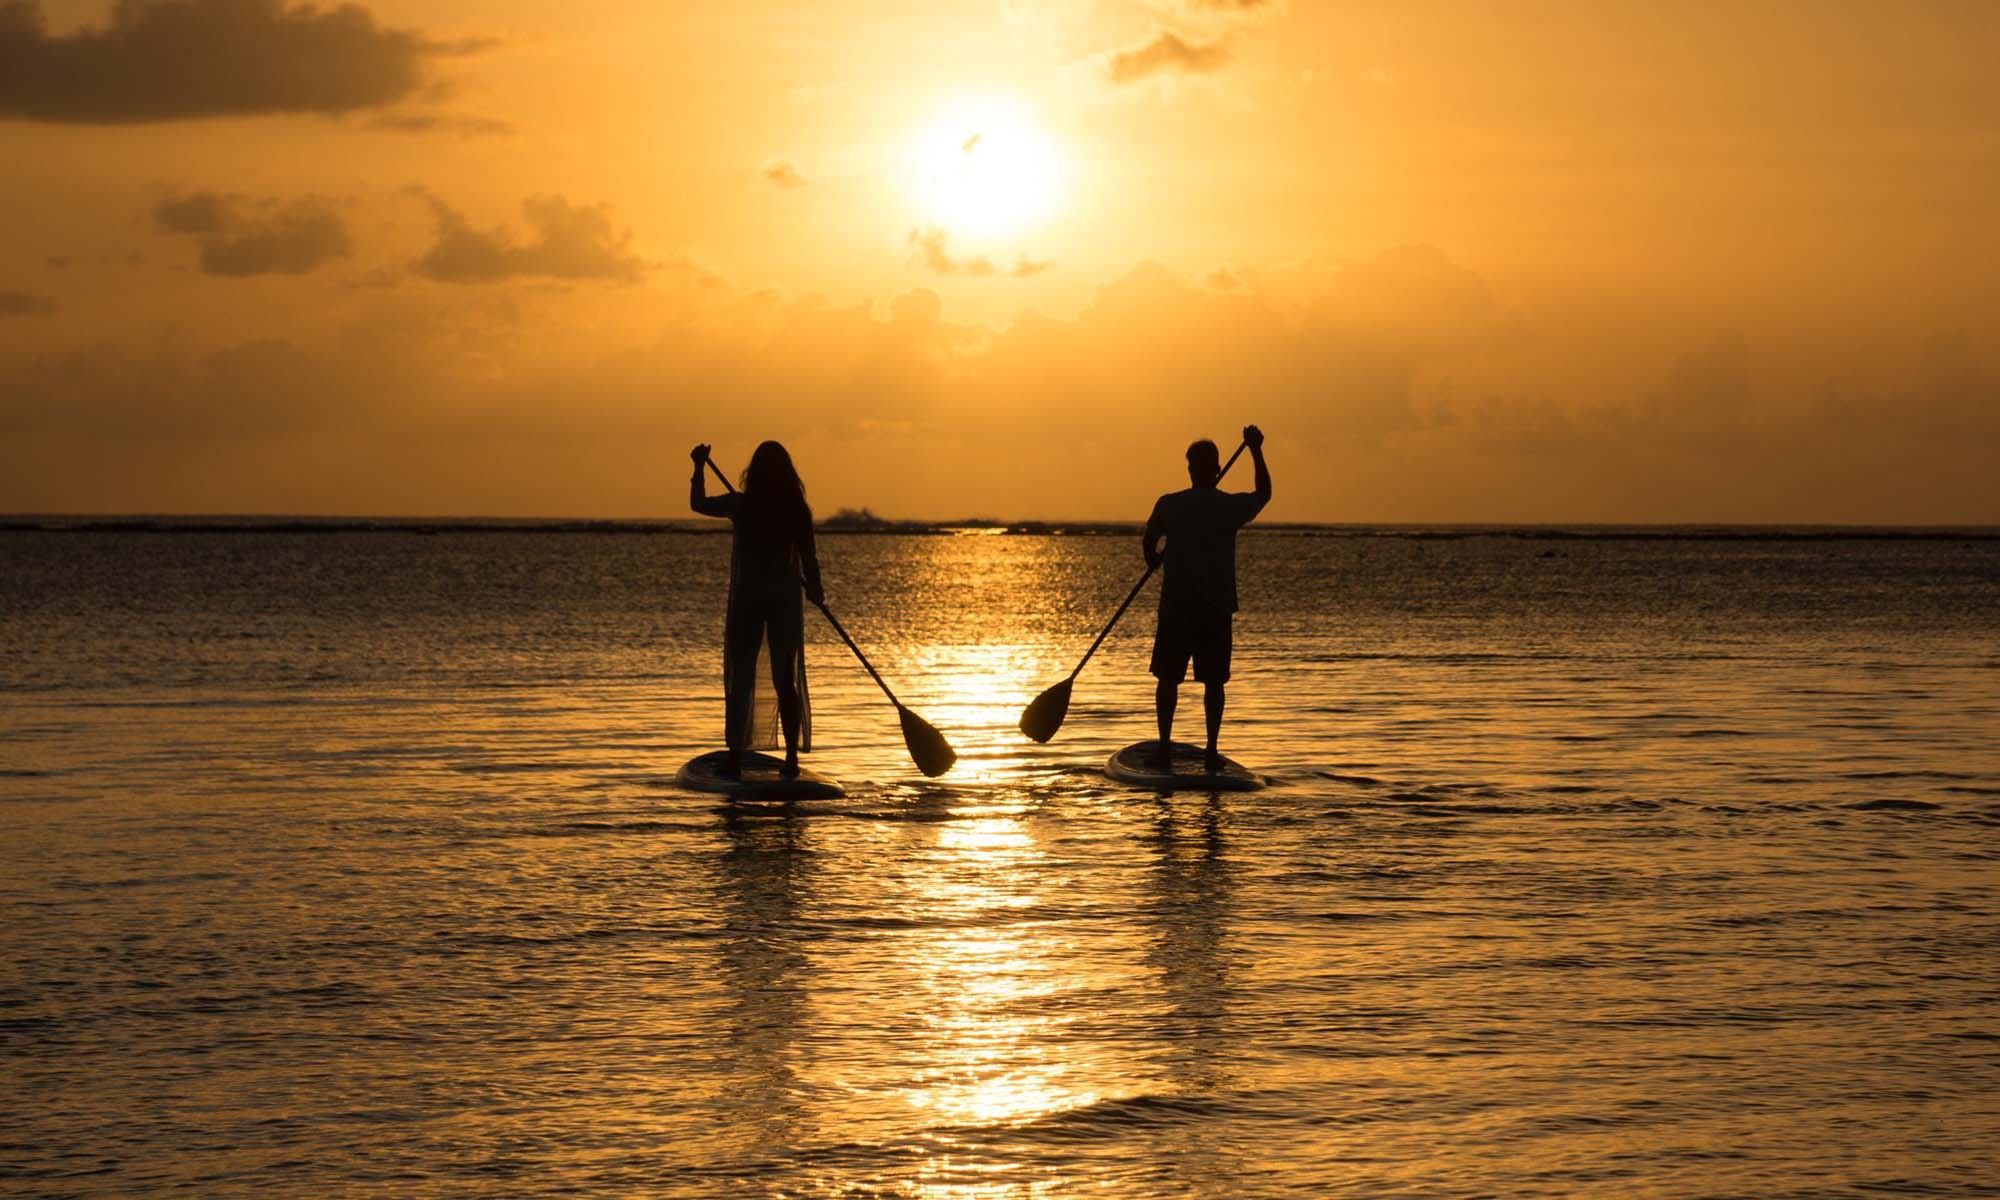 Ninamu Resort, Paddleboarding at Sunset